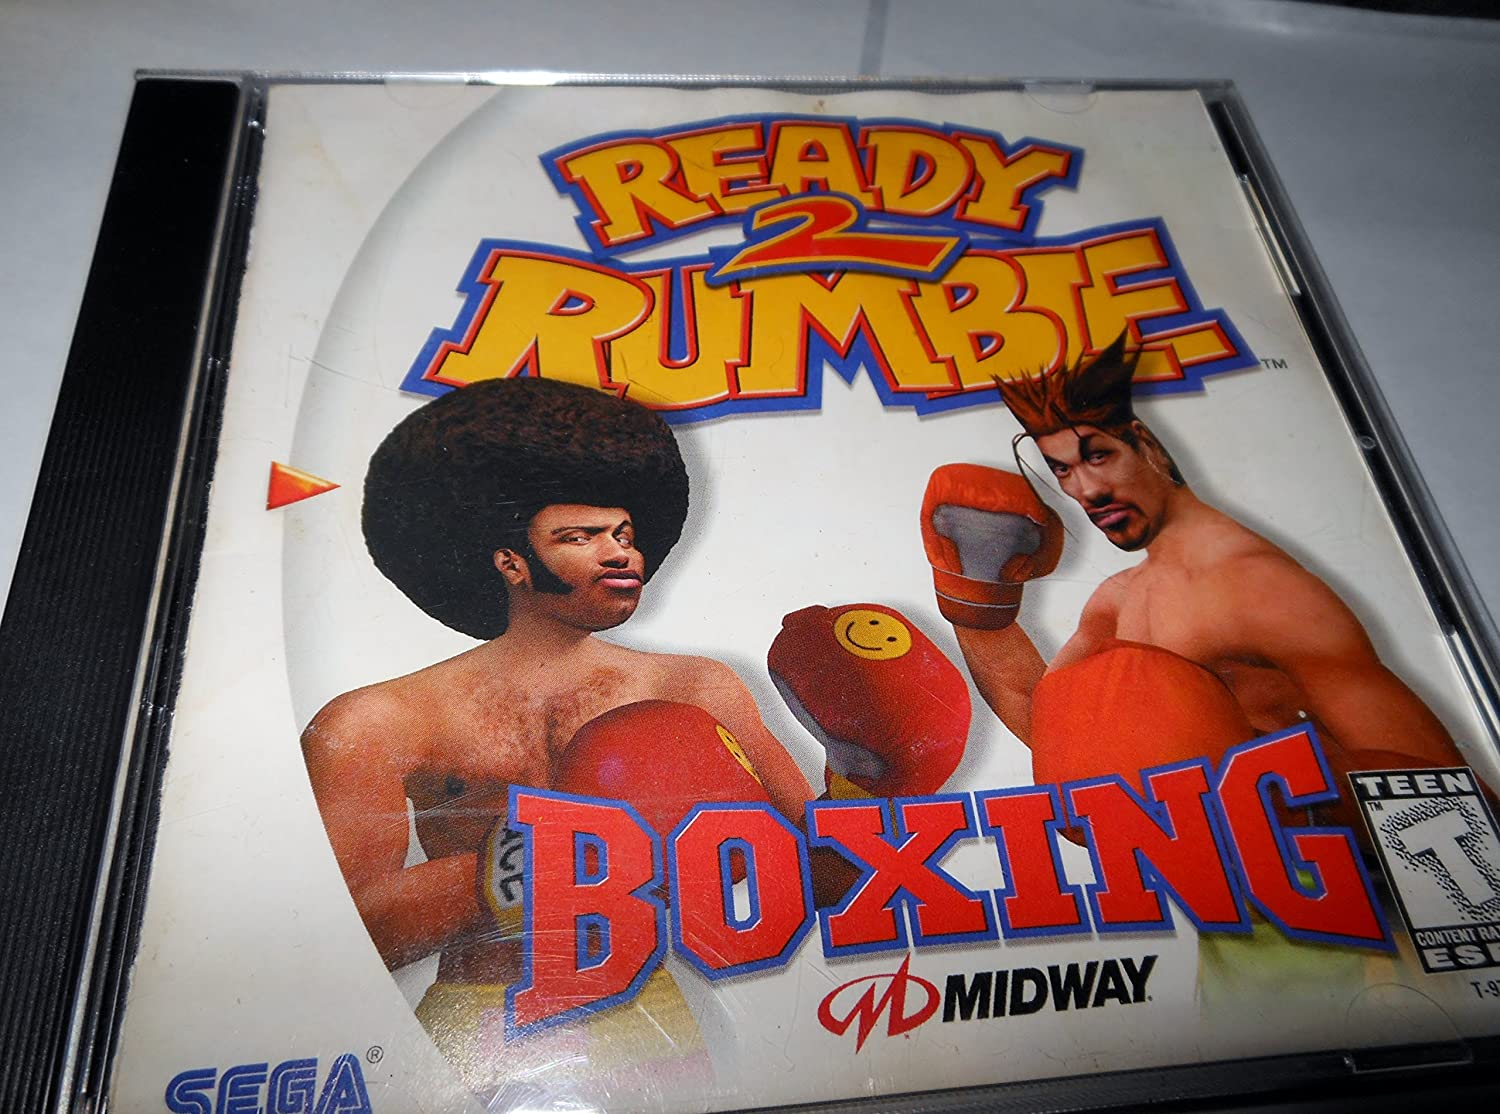 Ready 2 Rumble Boxing: Video Games